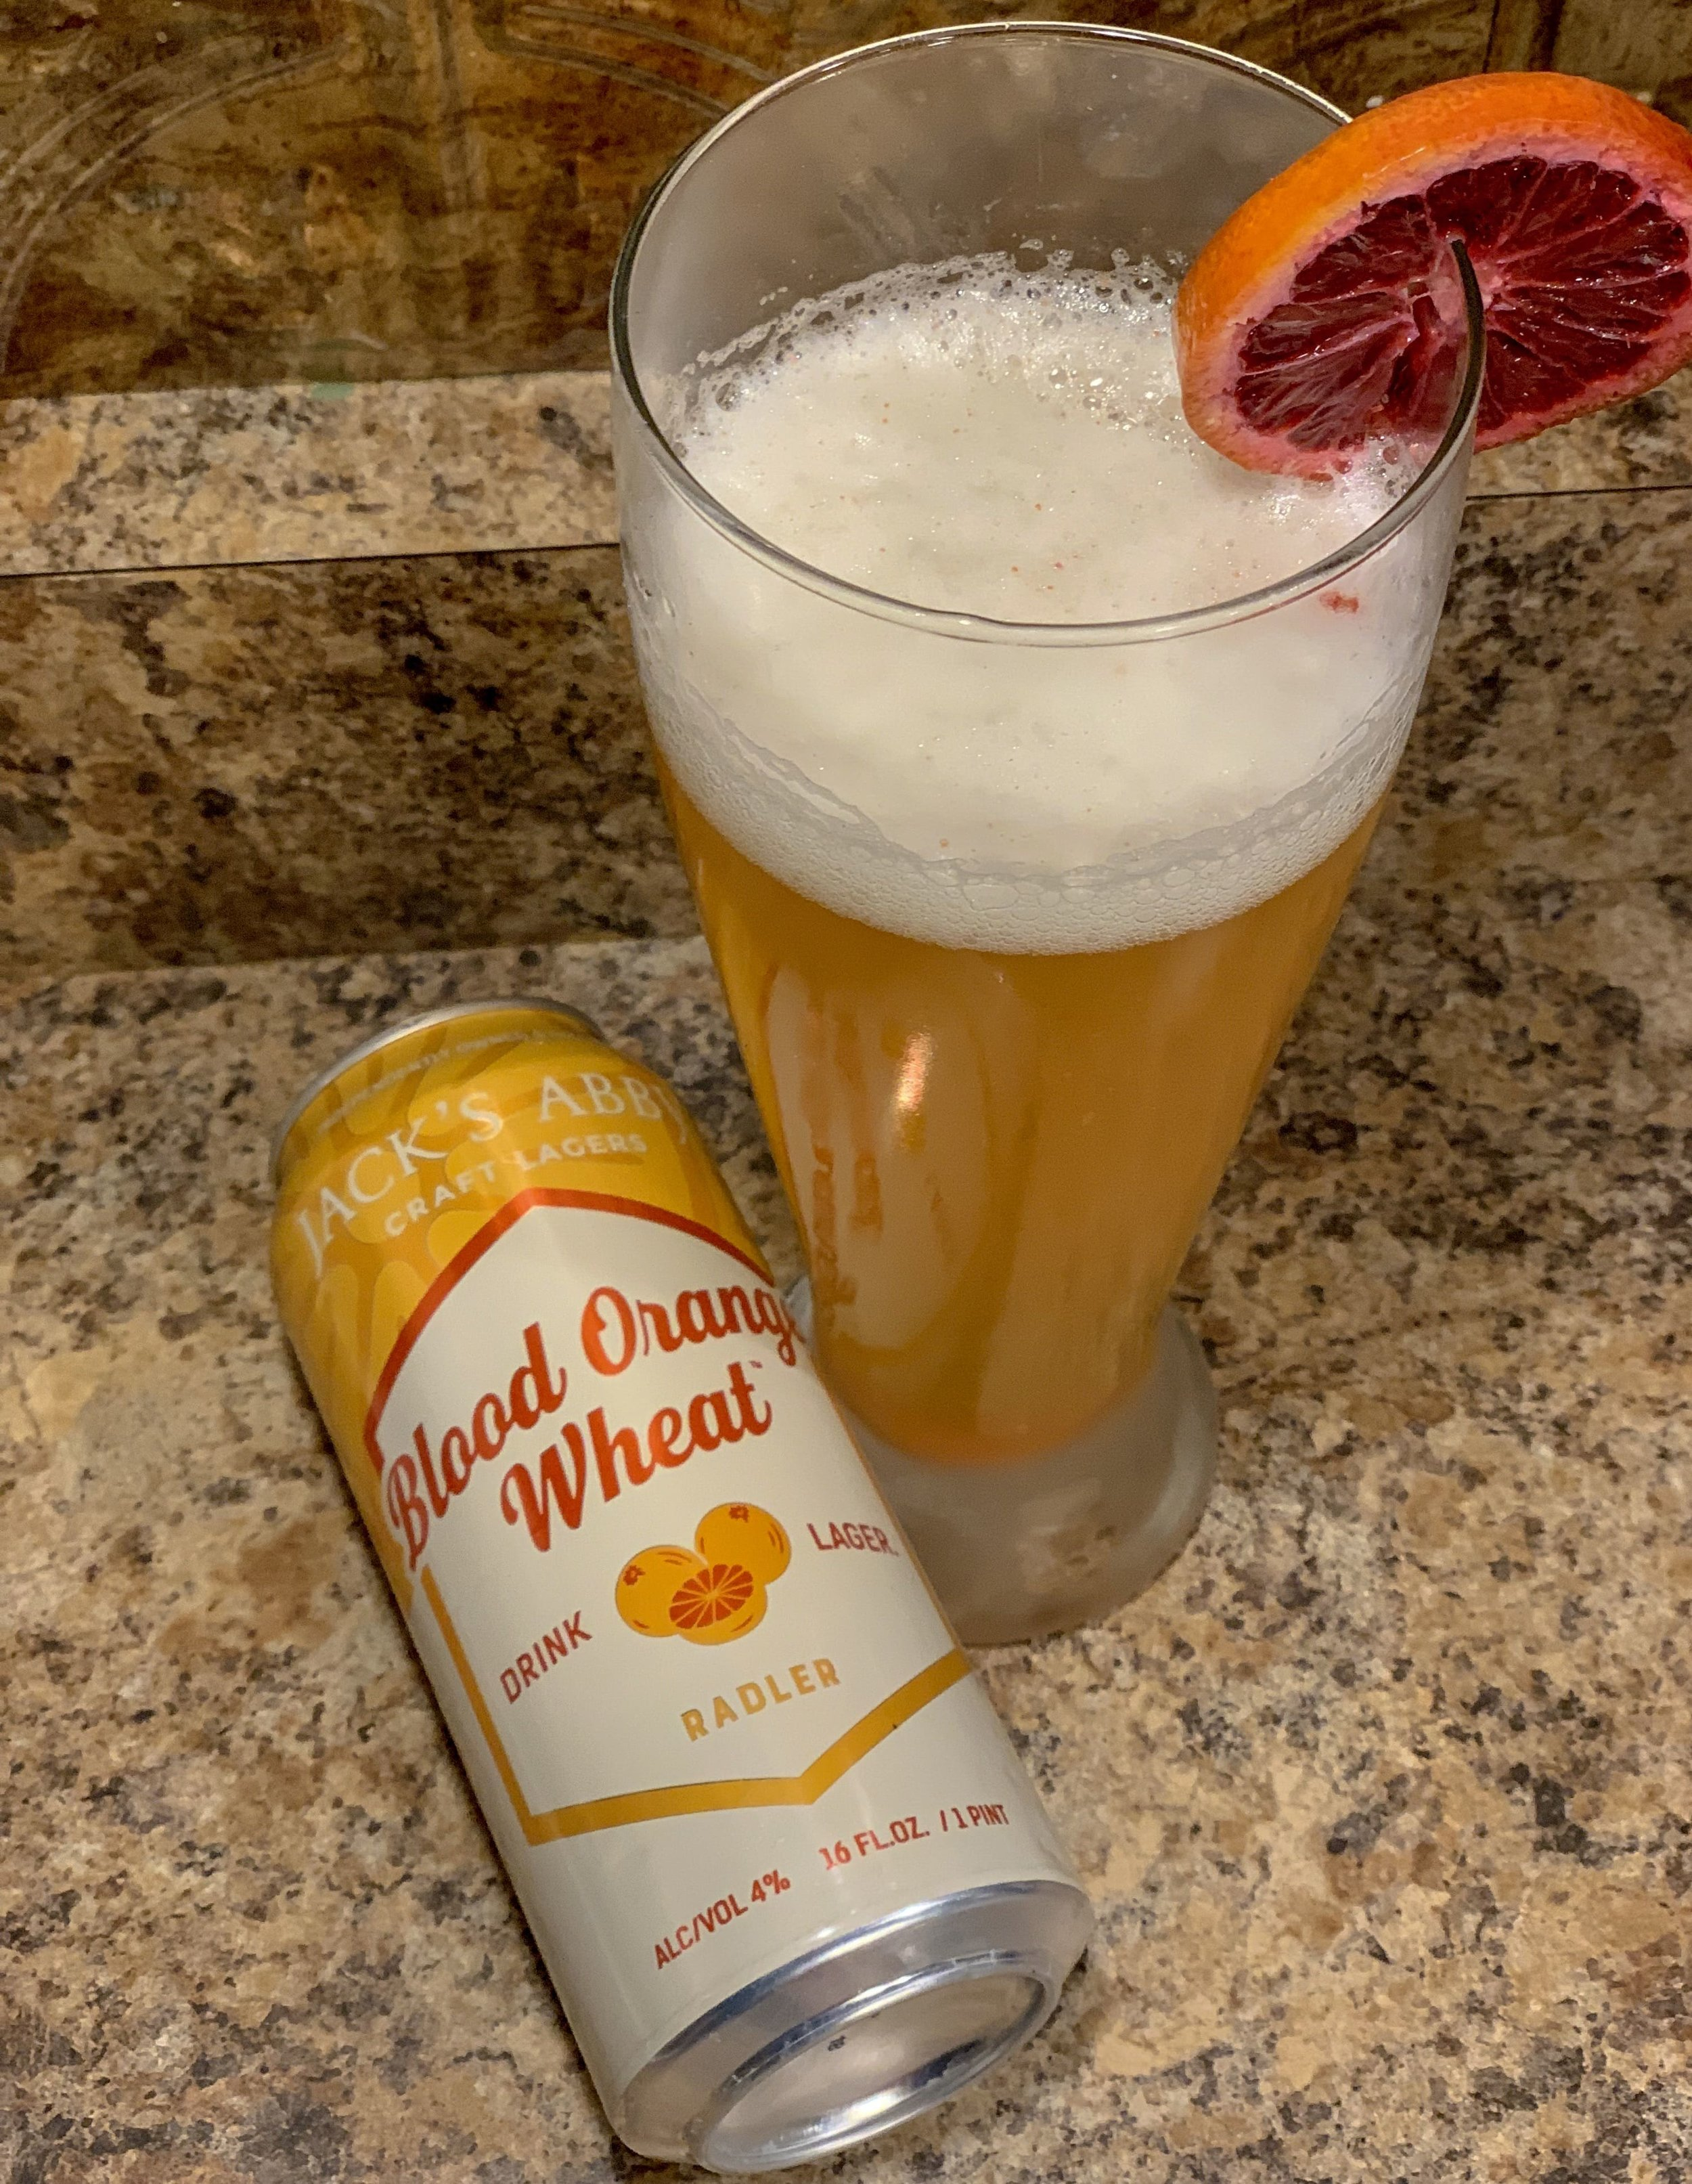 blood orange wheat beer-min.jpg